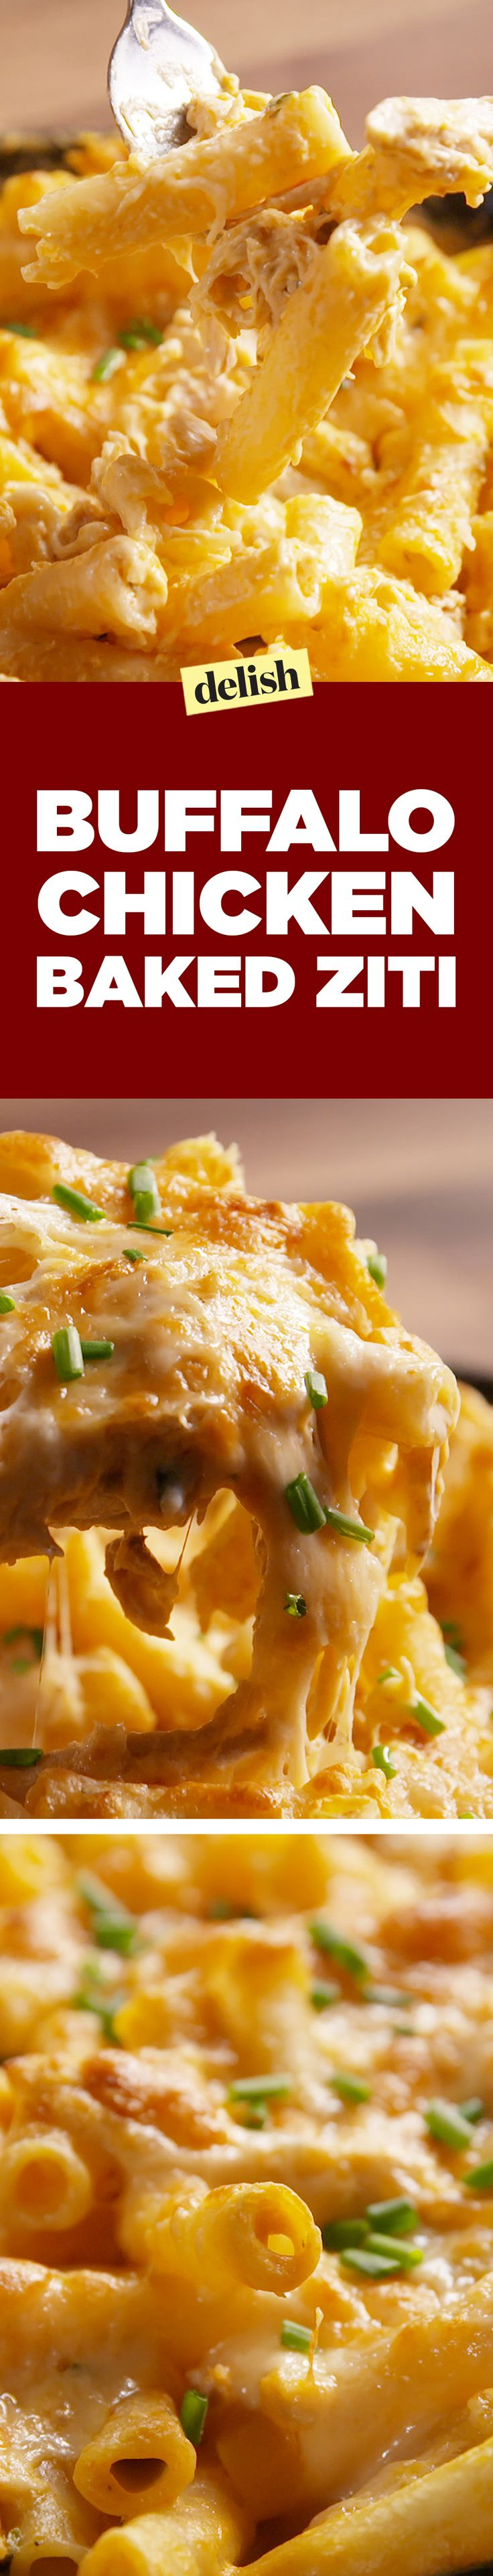 Buffalo Baked Ziti is our latest buff chick obsession. Get the recipe on Delish.com.